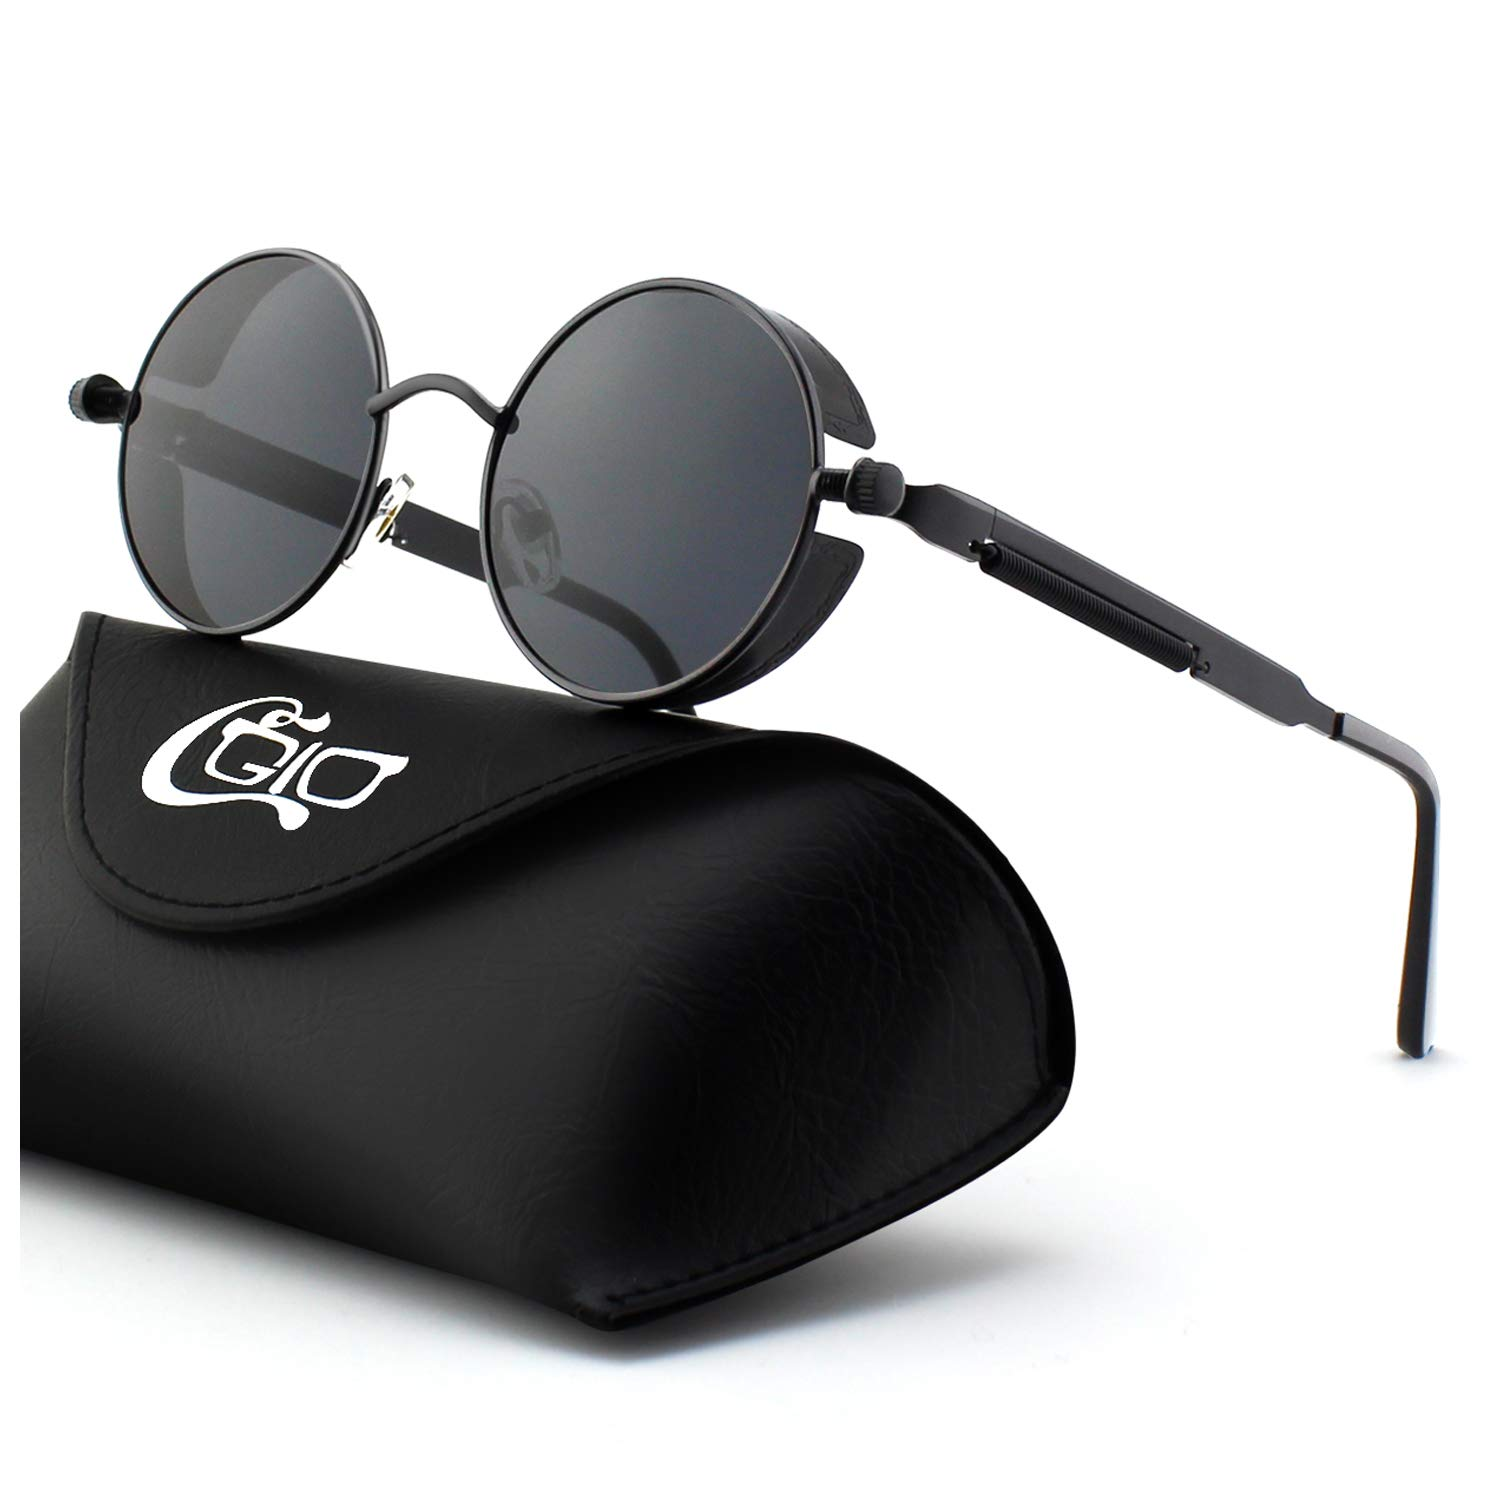 6e1d5269468 CGID E72 Retro Steampunk Style Unisex Inspired Round Metal Circle Polarized  Sunglasses for Men and Women